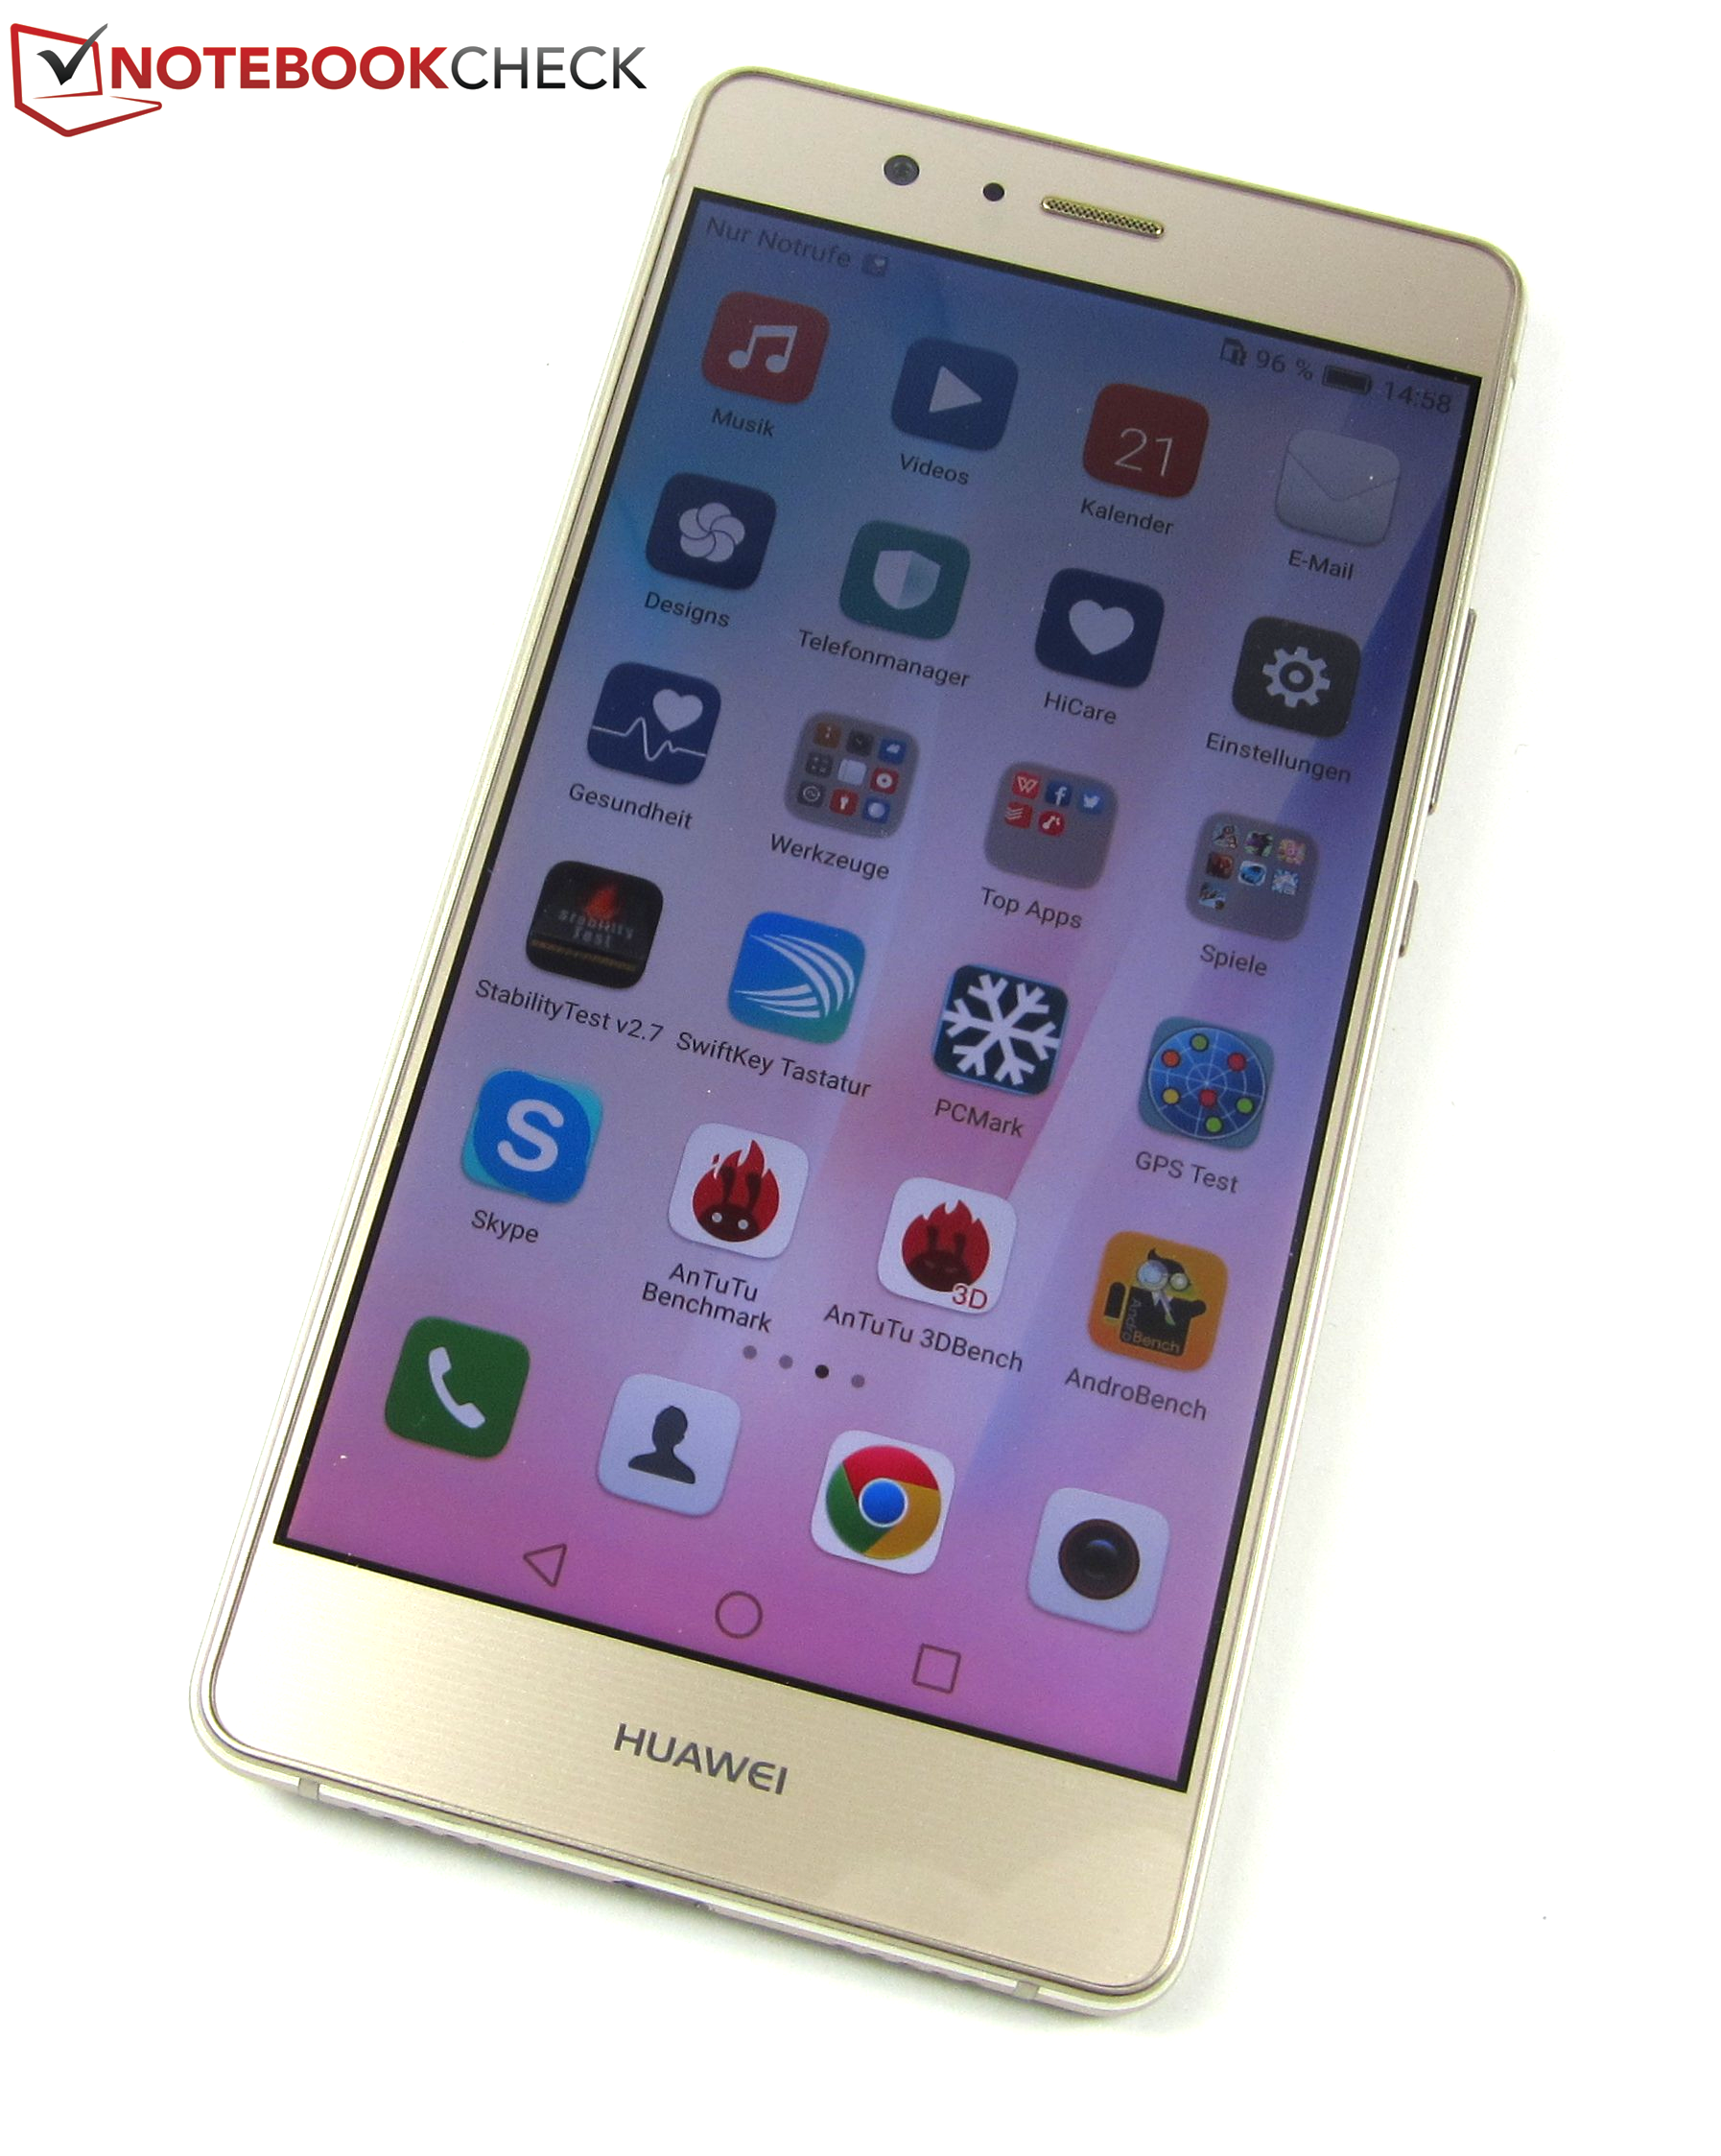 Huawei p9 lite smartphone review notebookcheck reviews full resolution ccuart Images